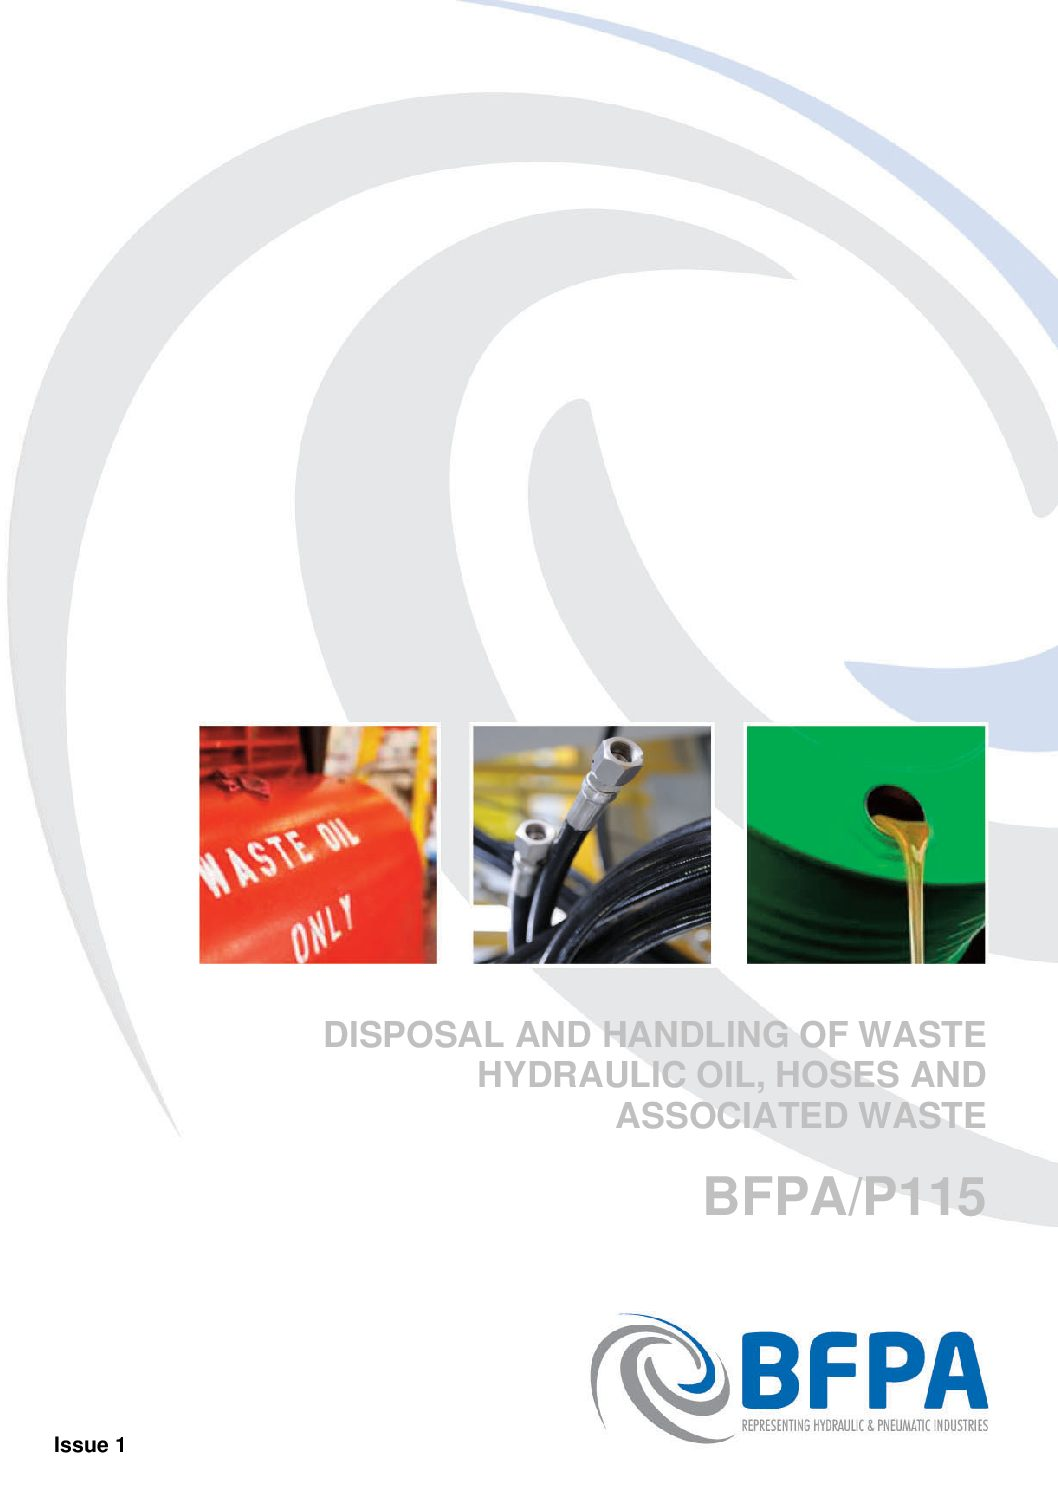 Disposal and handling of waste hydraulic oil, hoses and associated waste